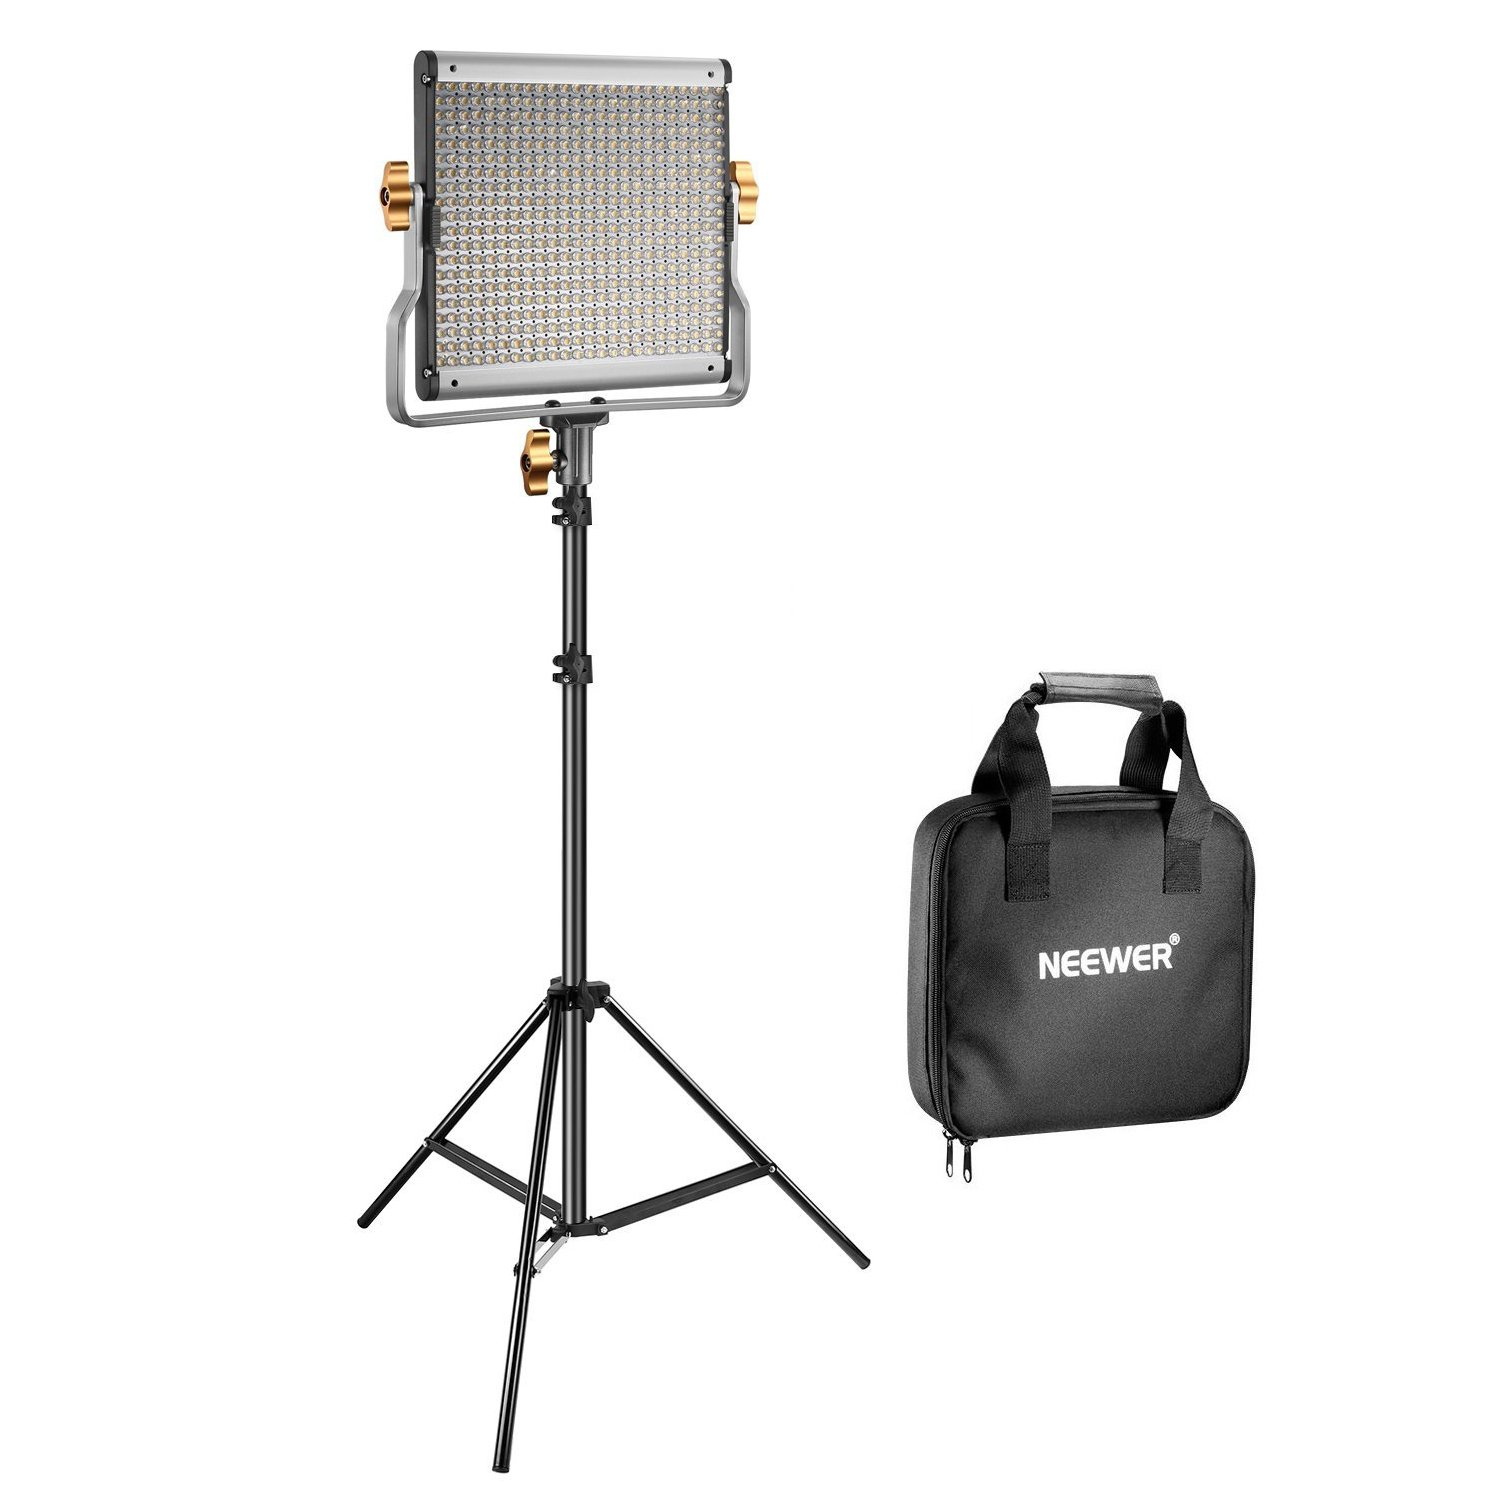 Neewer 480 LED Video Light and Stand Lighting Kit - Dimmable Bi-Color LED Panel with U Bracket (3200-5600K, CRI 96+) and 75-Inch Light Stand for Photo Studio Portrait, YouTube Video Photography by Neewer (Image #1)